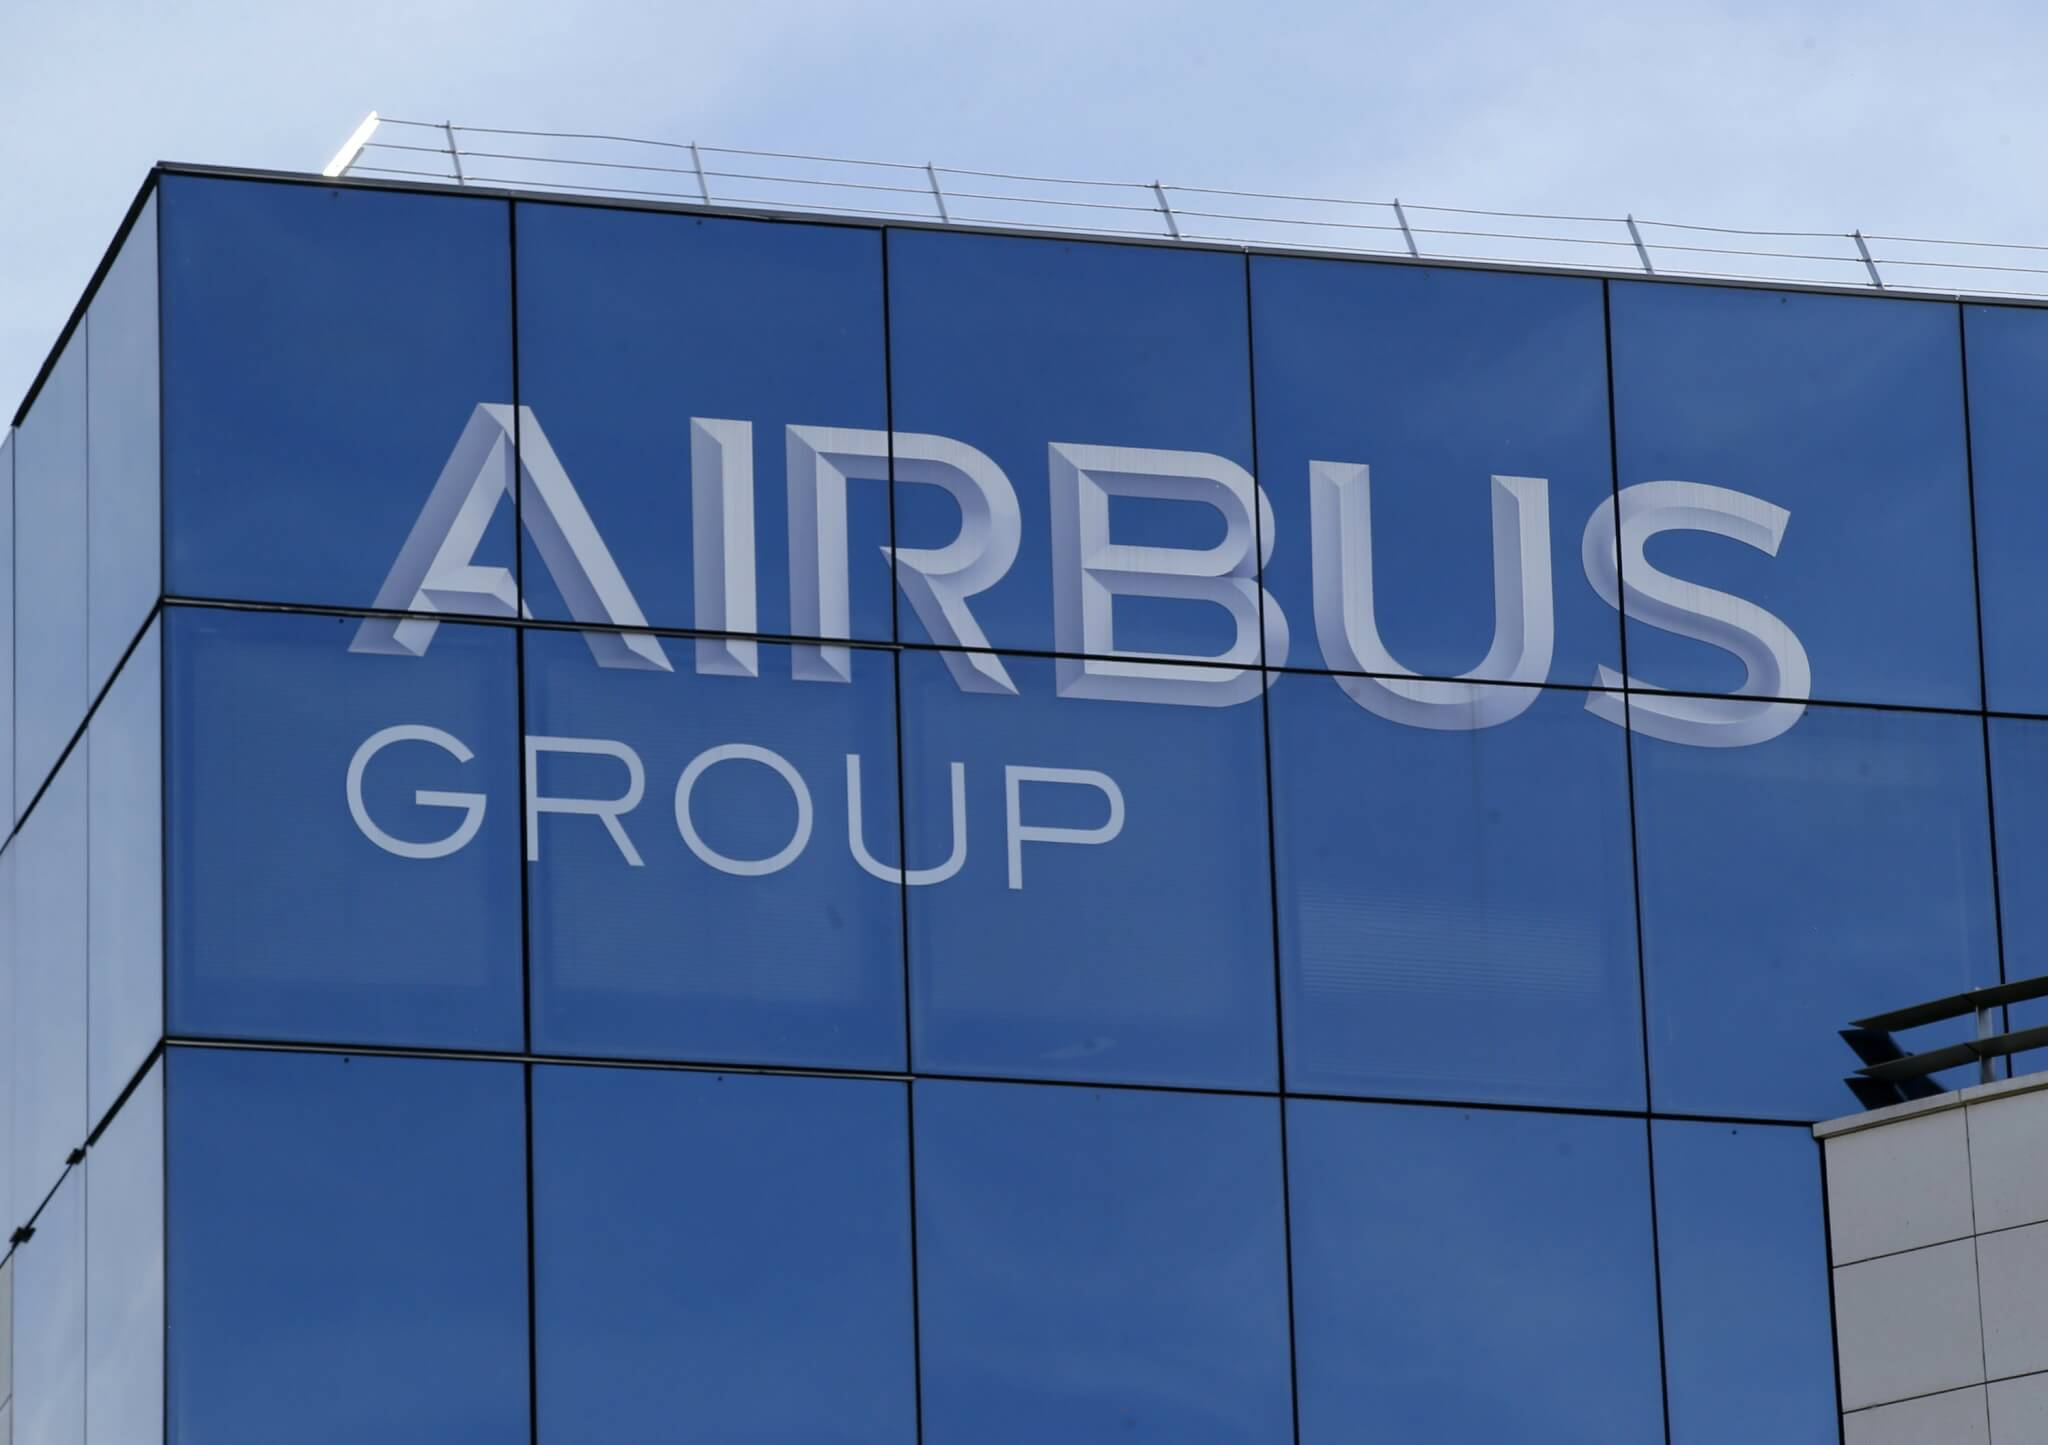 Airbus is pausing production